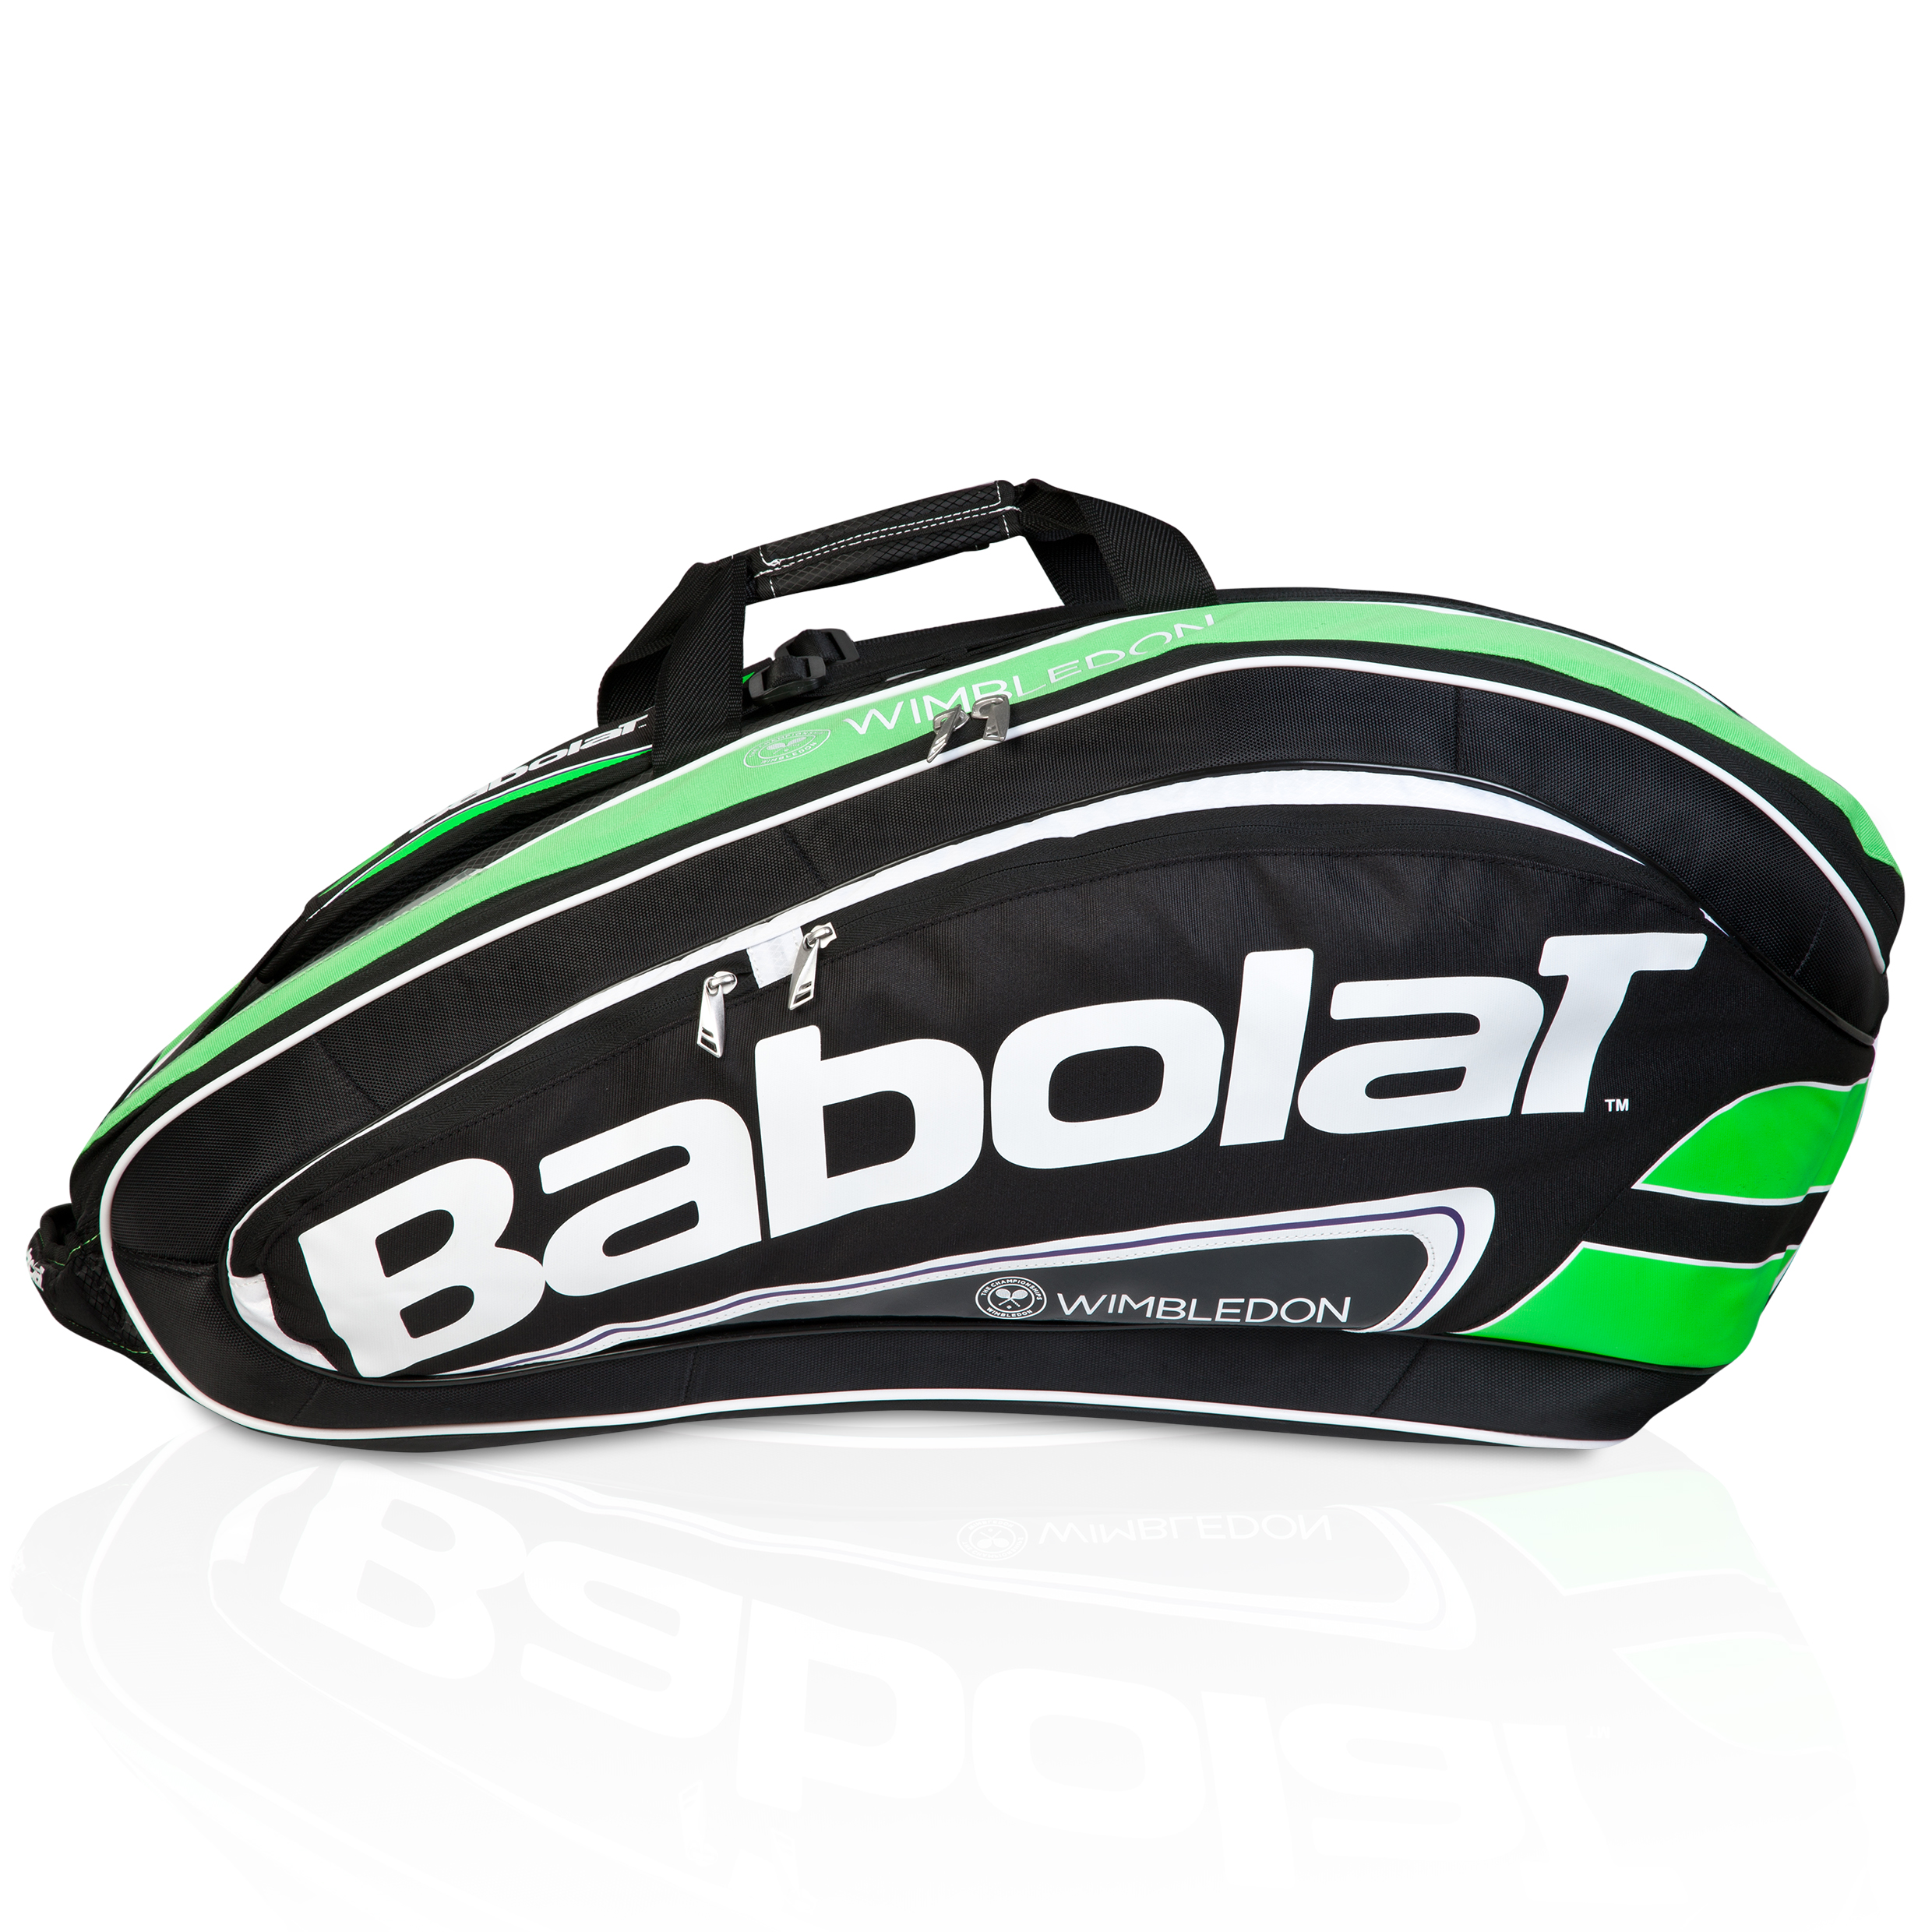 Wimbledon Team x 12 Racket Holder - Black/Green Black